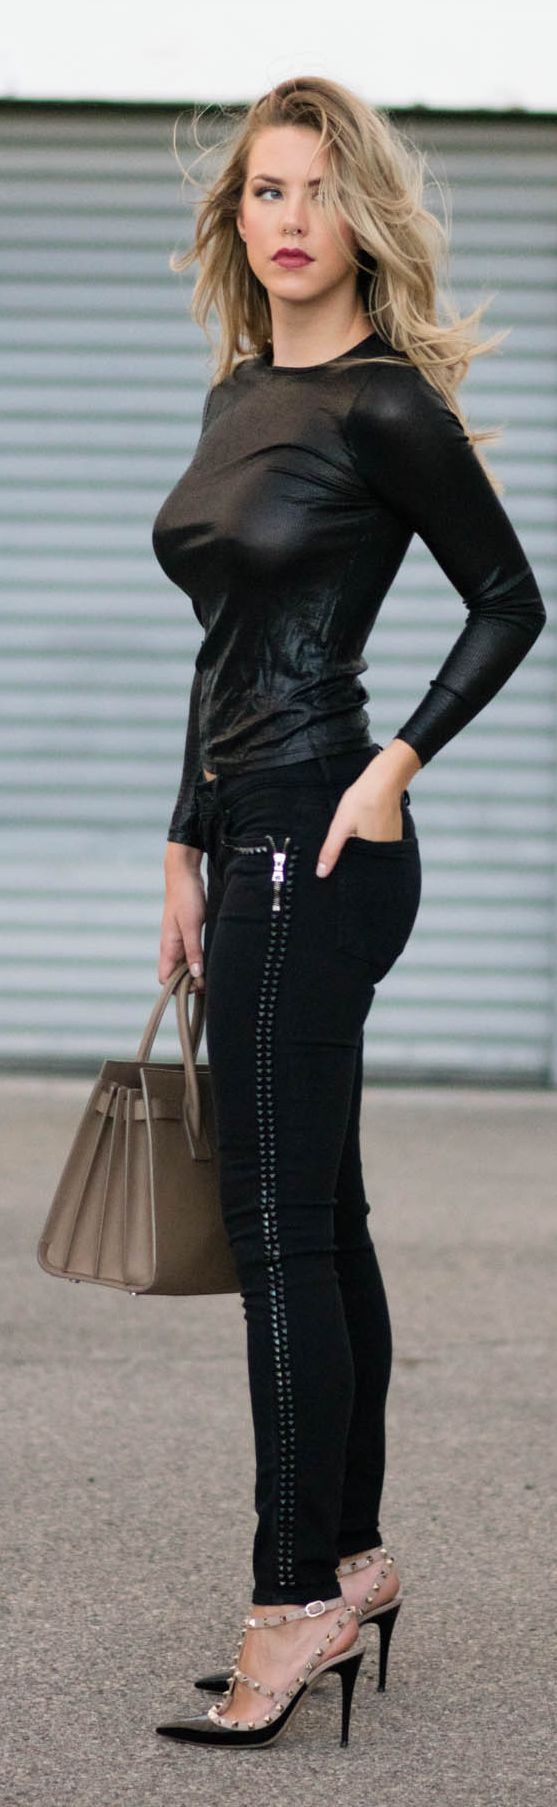 Studs On Black Fall Inspo by Kier Couture